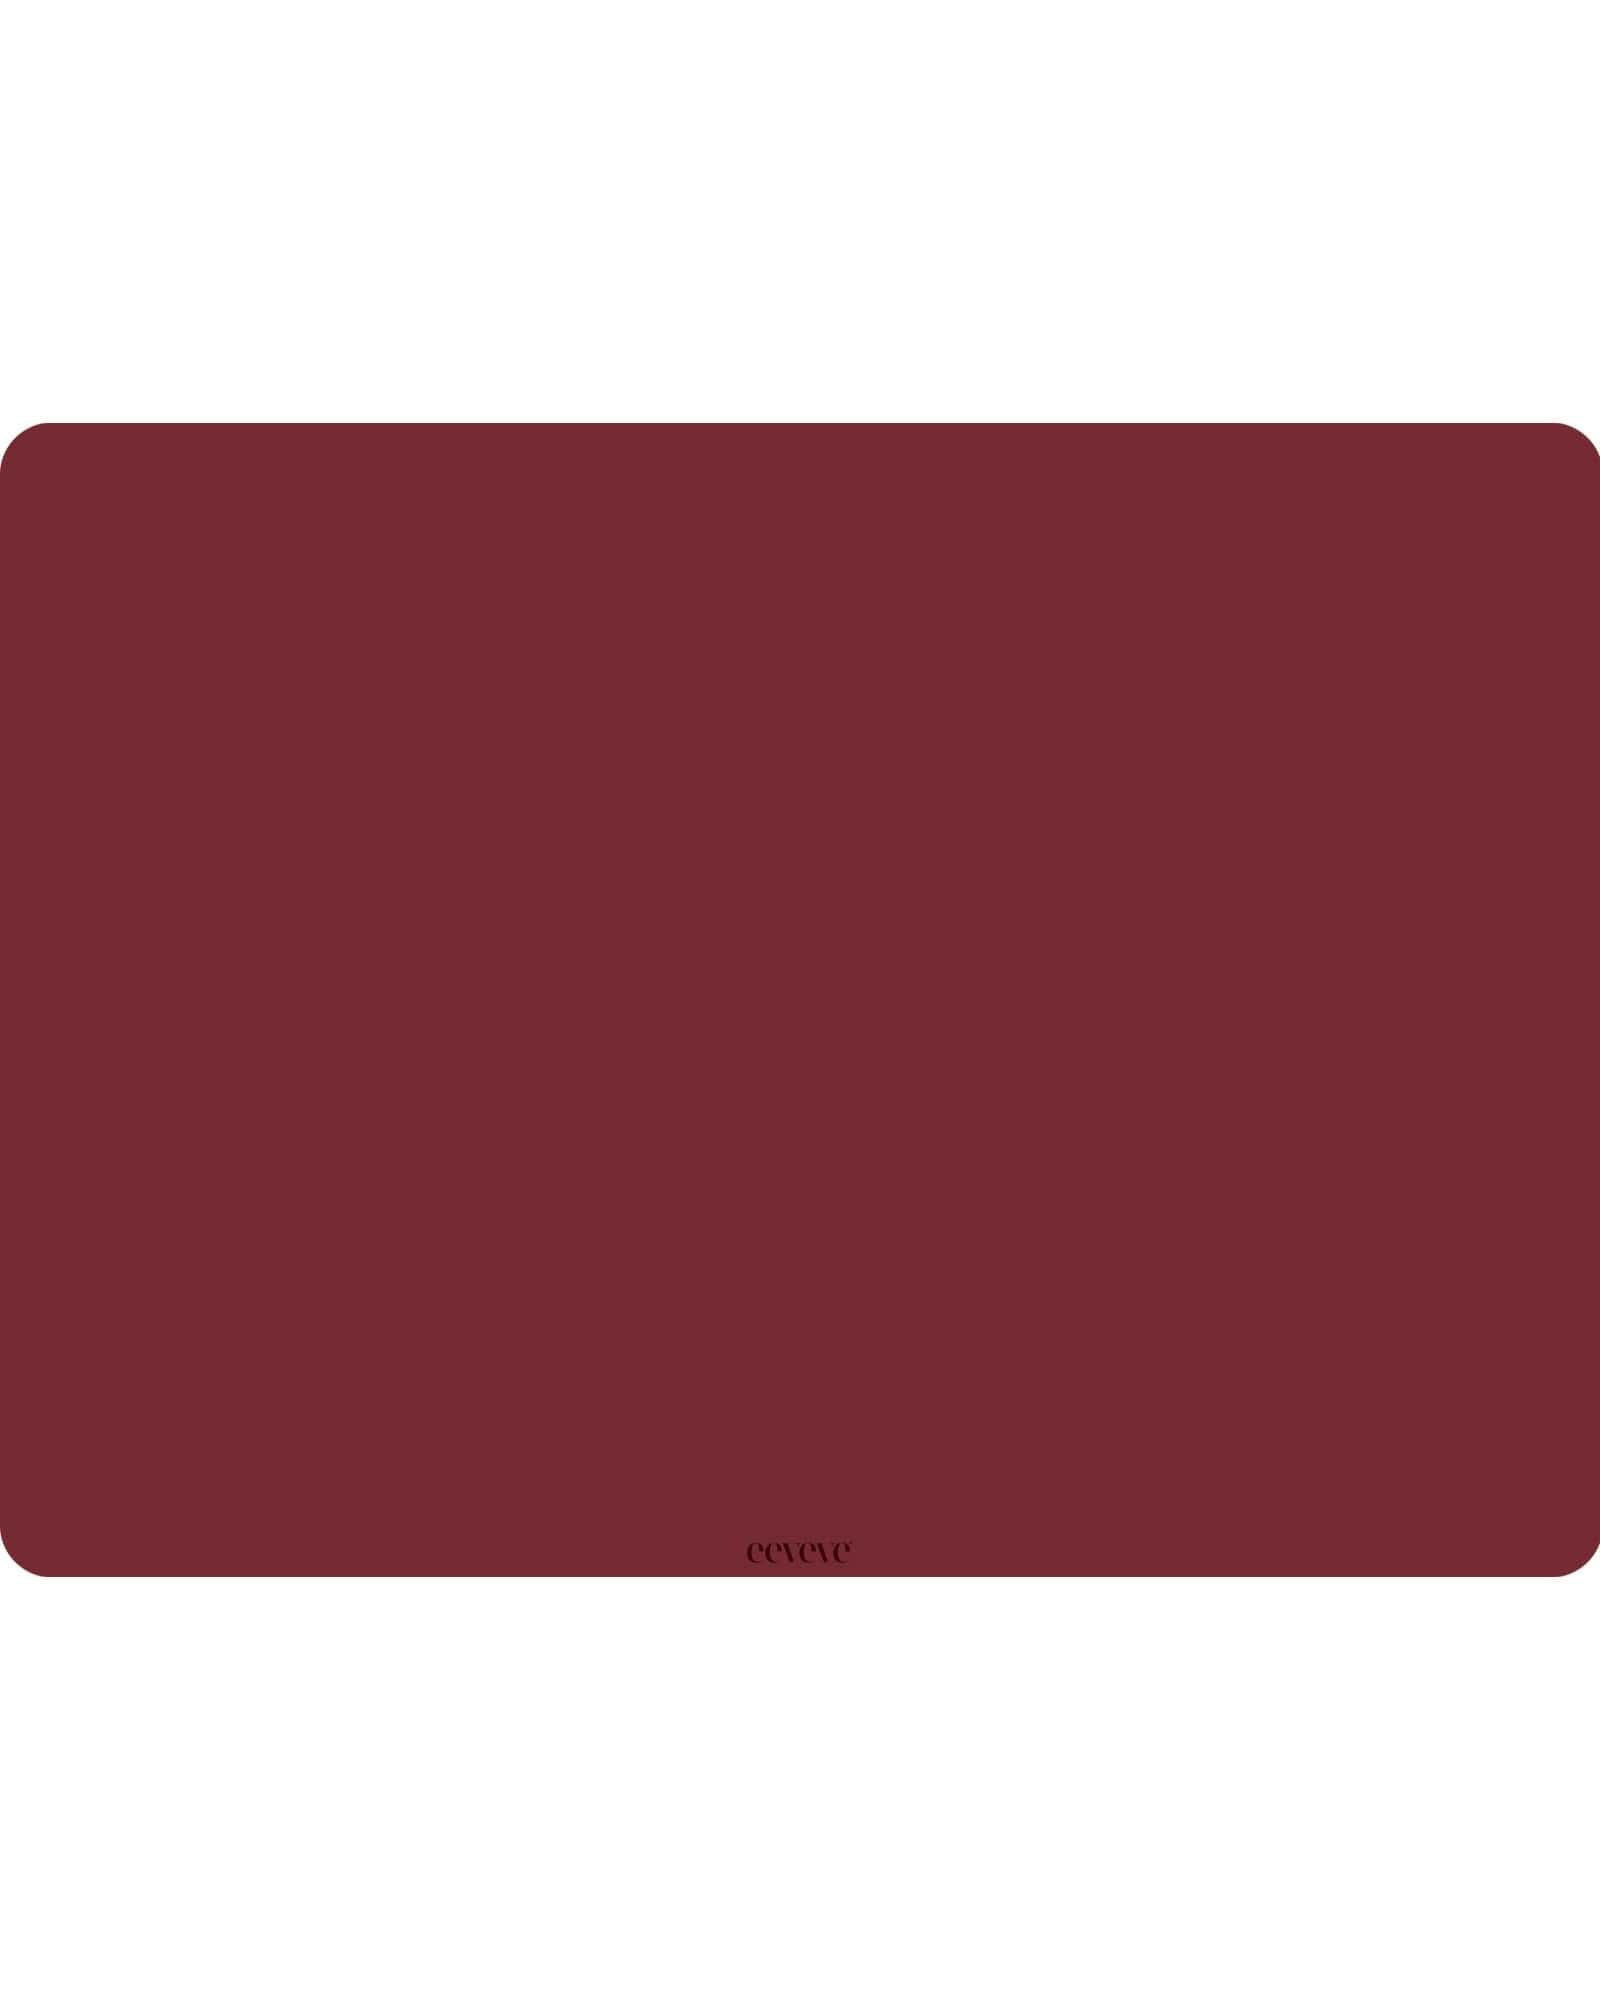 Eeveve - 6x Placemats Marsala - Red